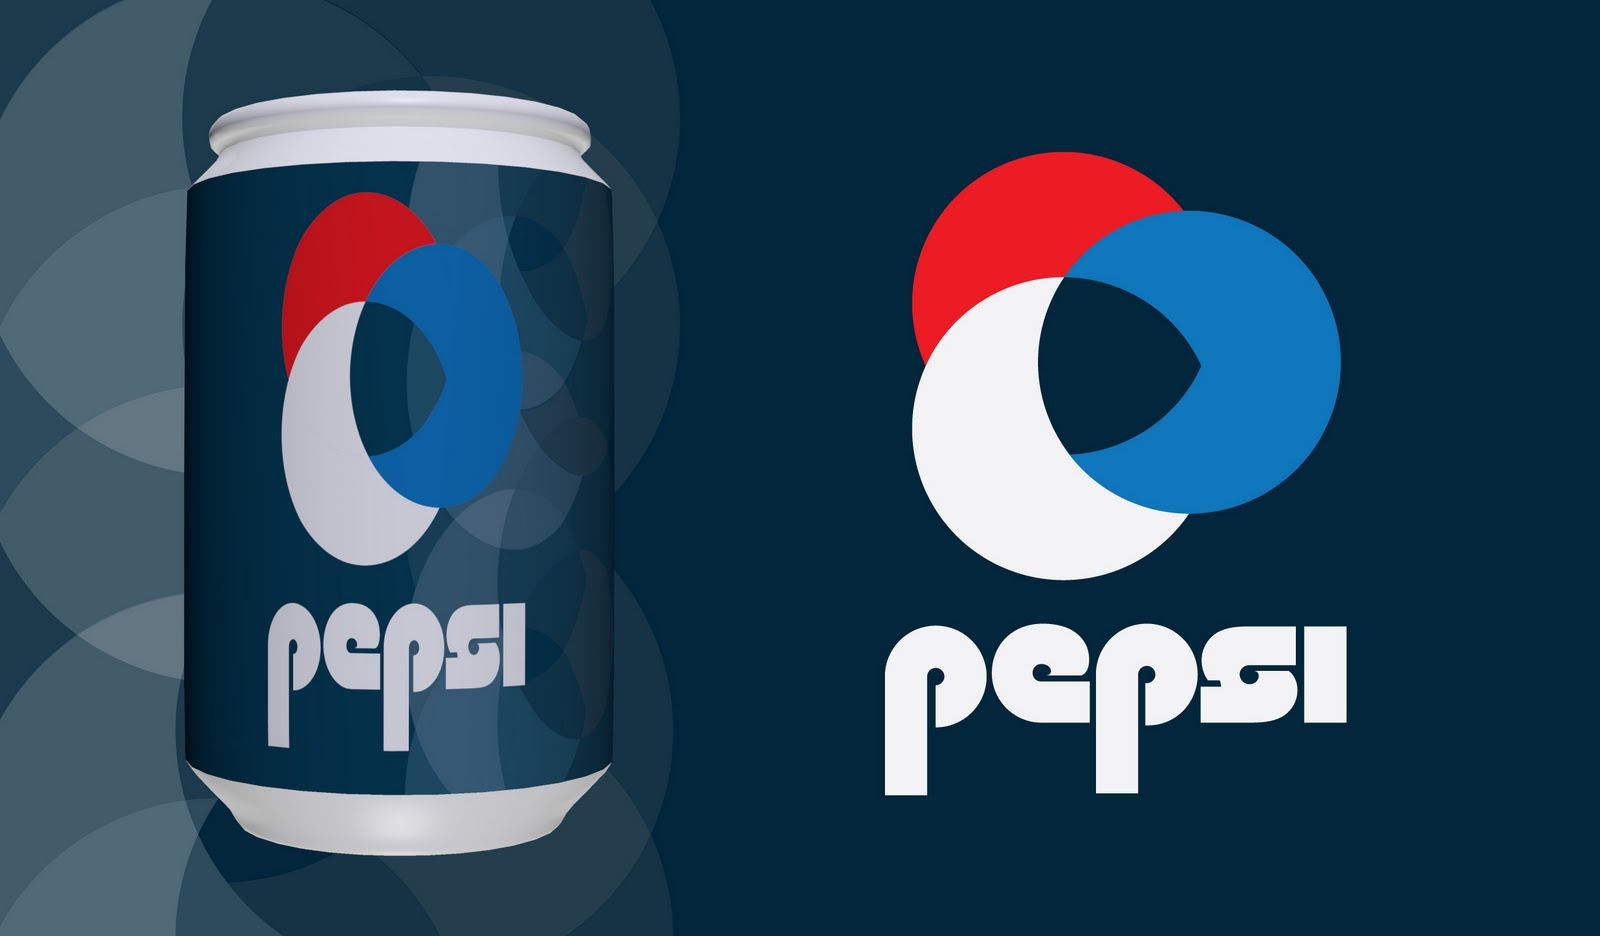 where is the new stuff?: My take on pepsi.